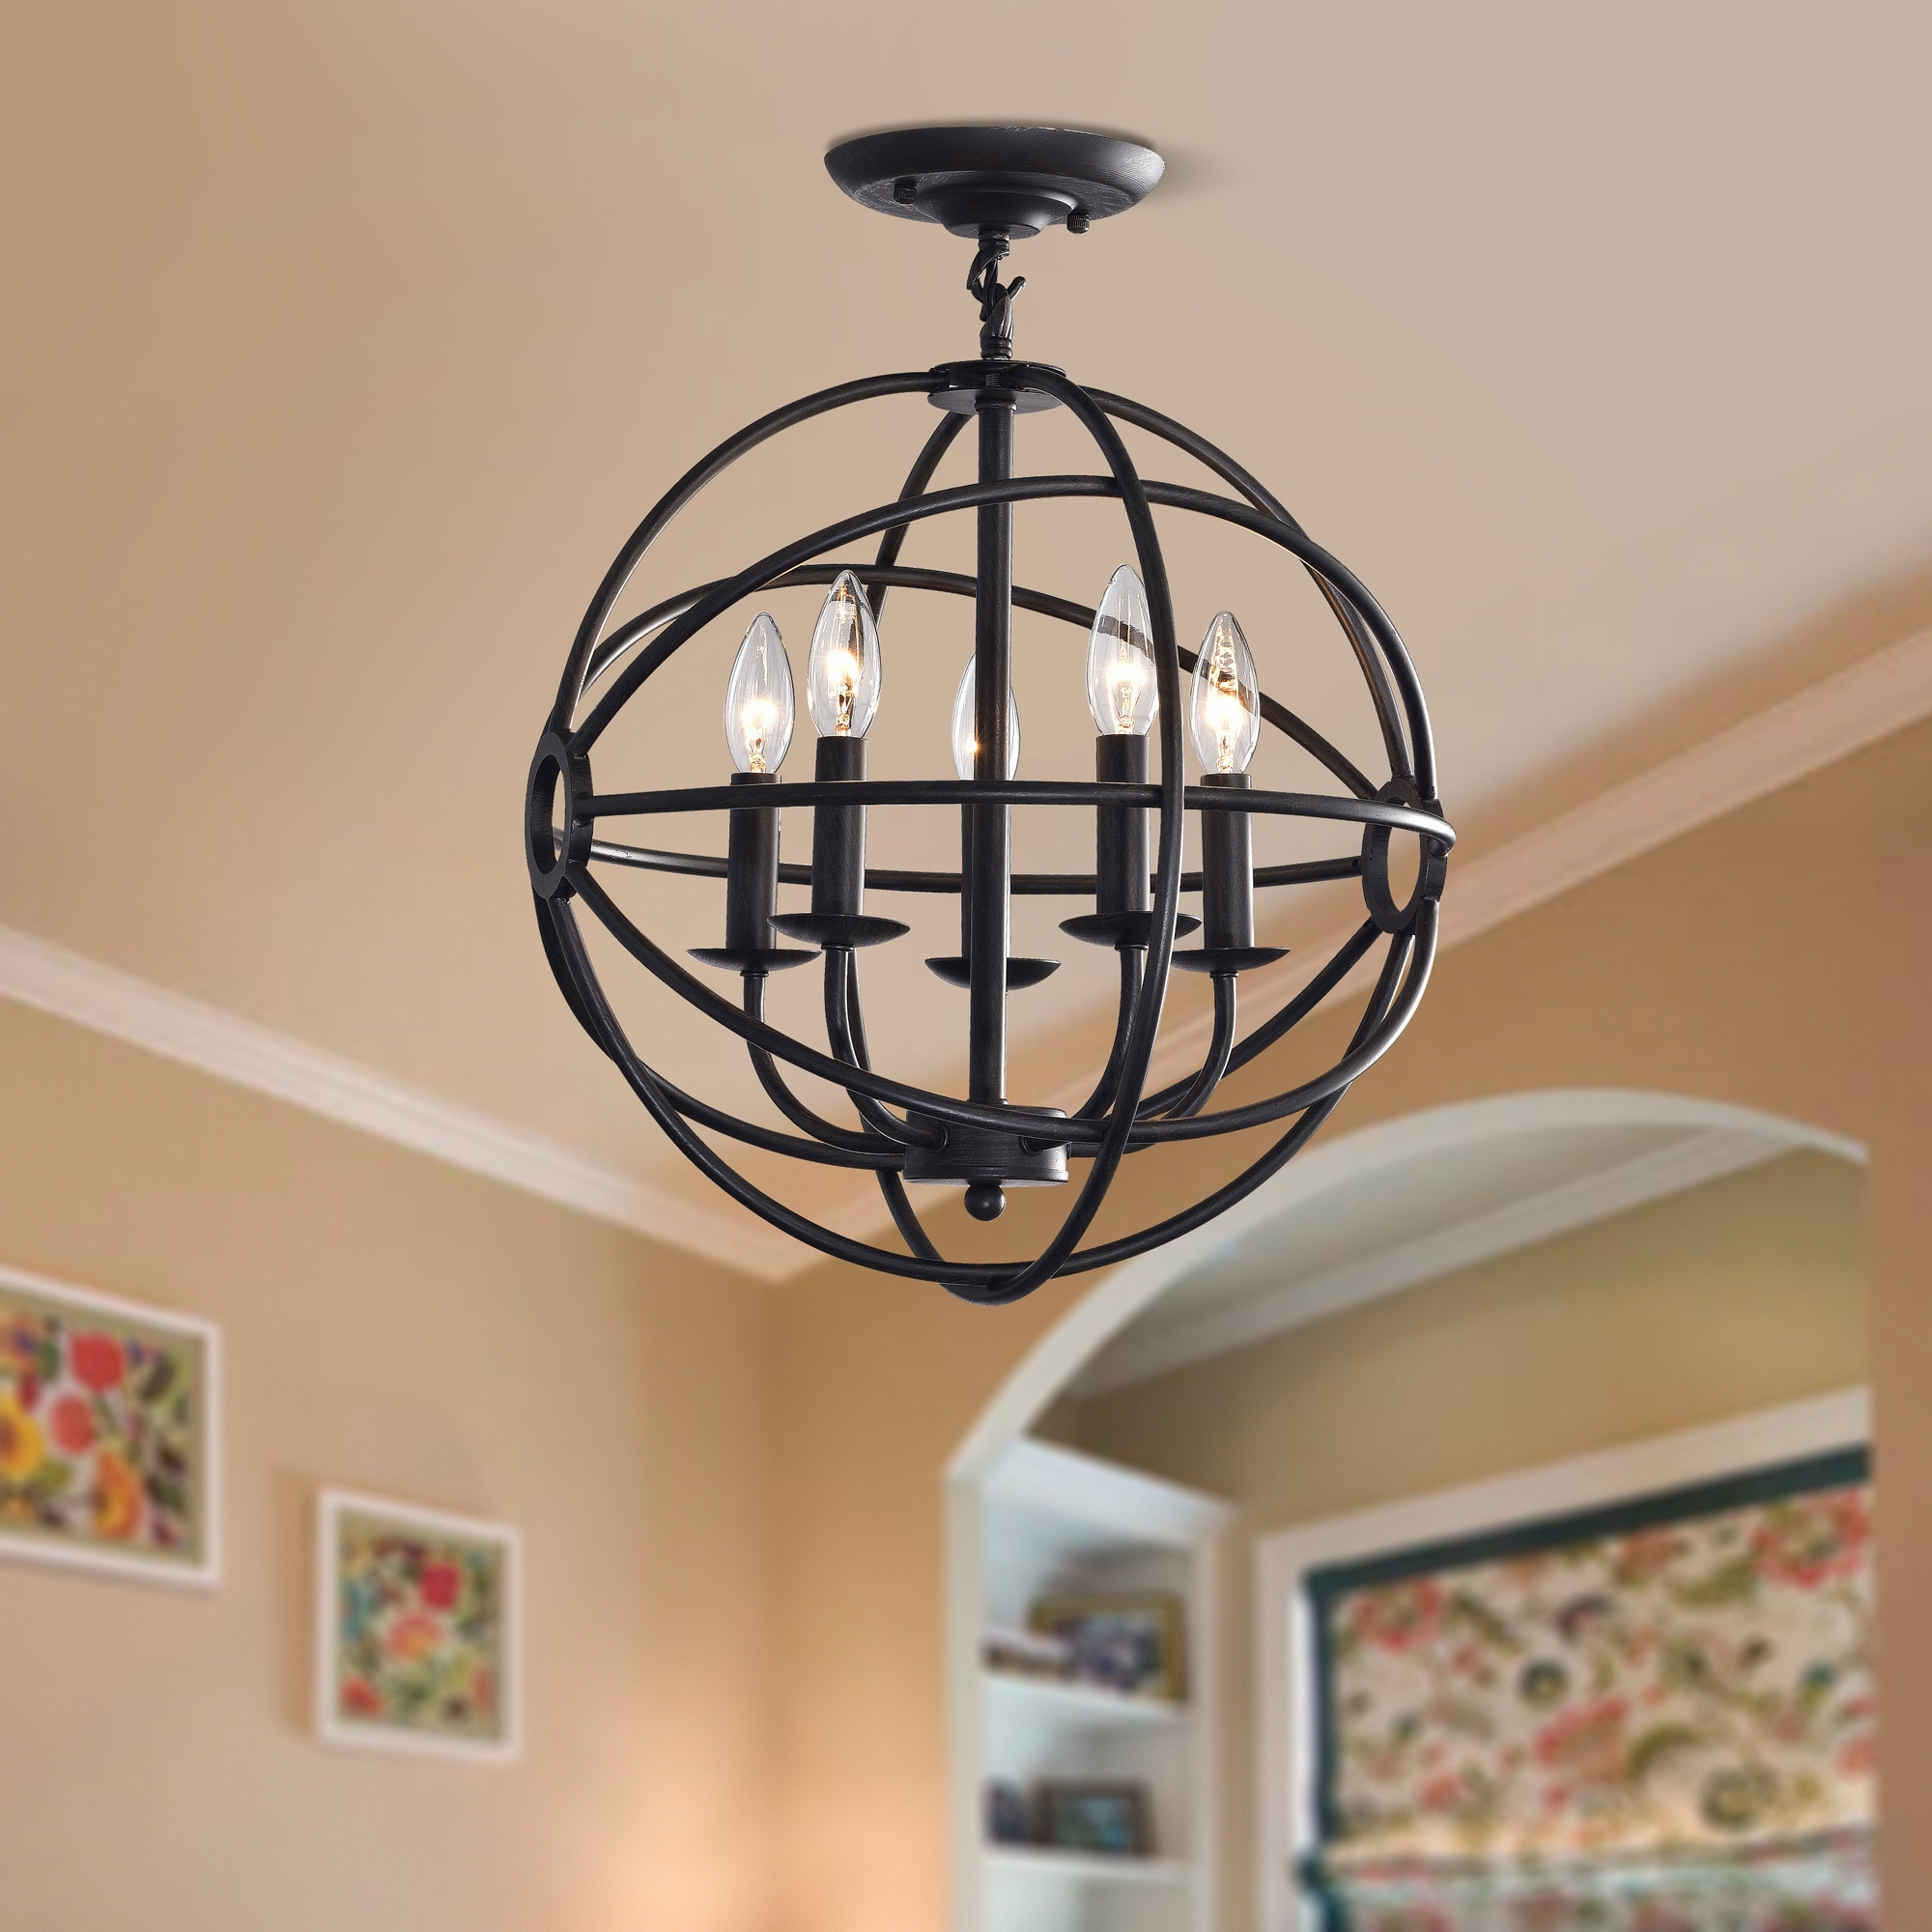 Shop Carbon Loft Bidwell Antique Black 5 Light Iron Orb